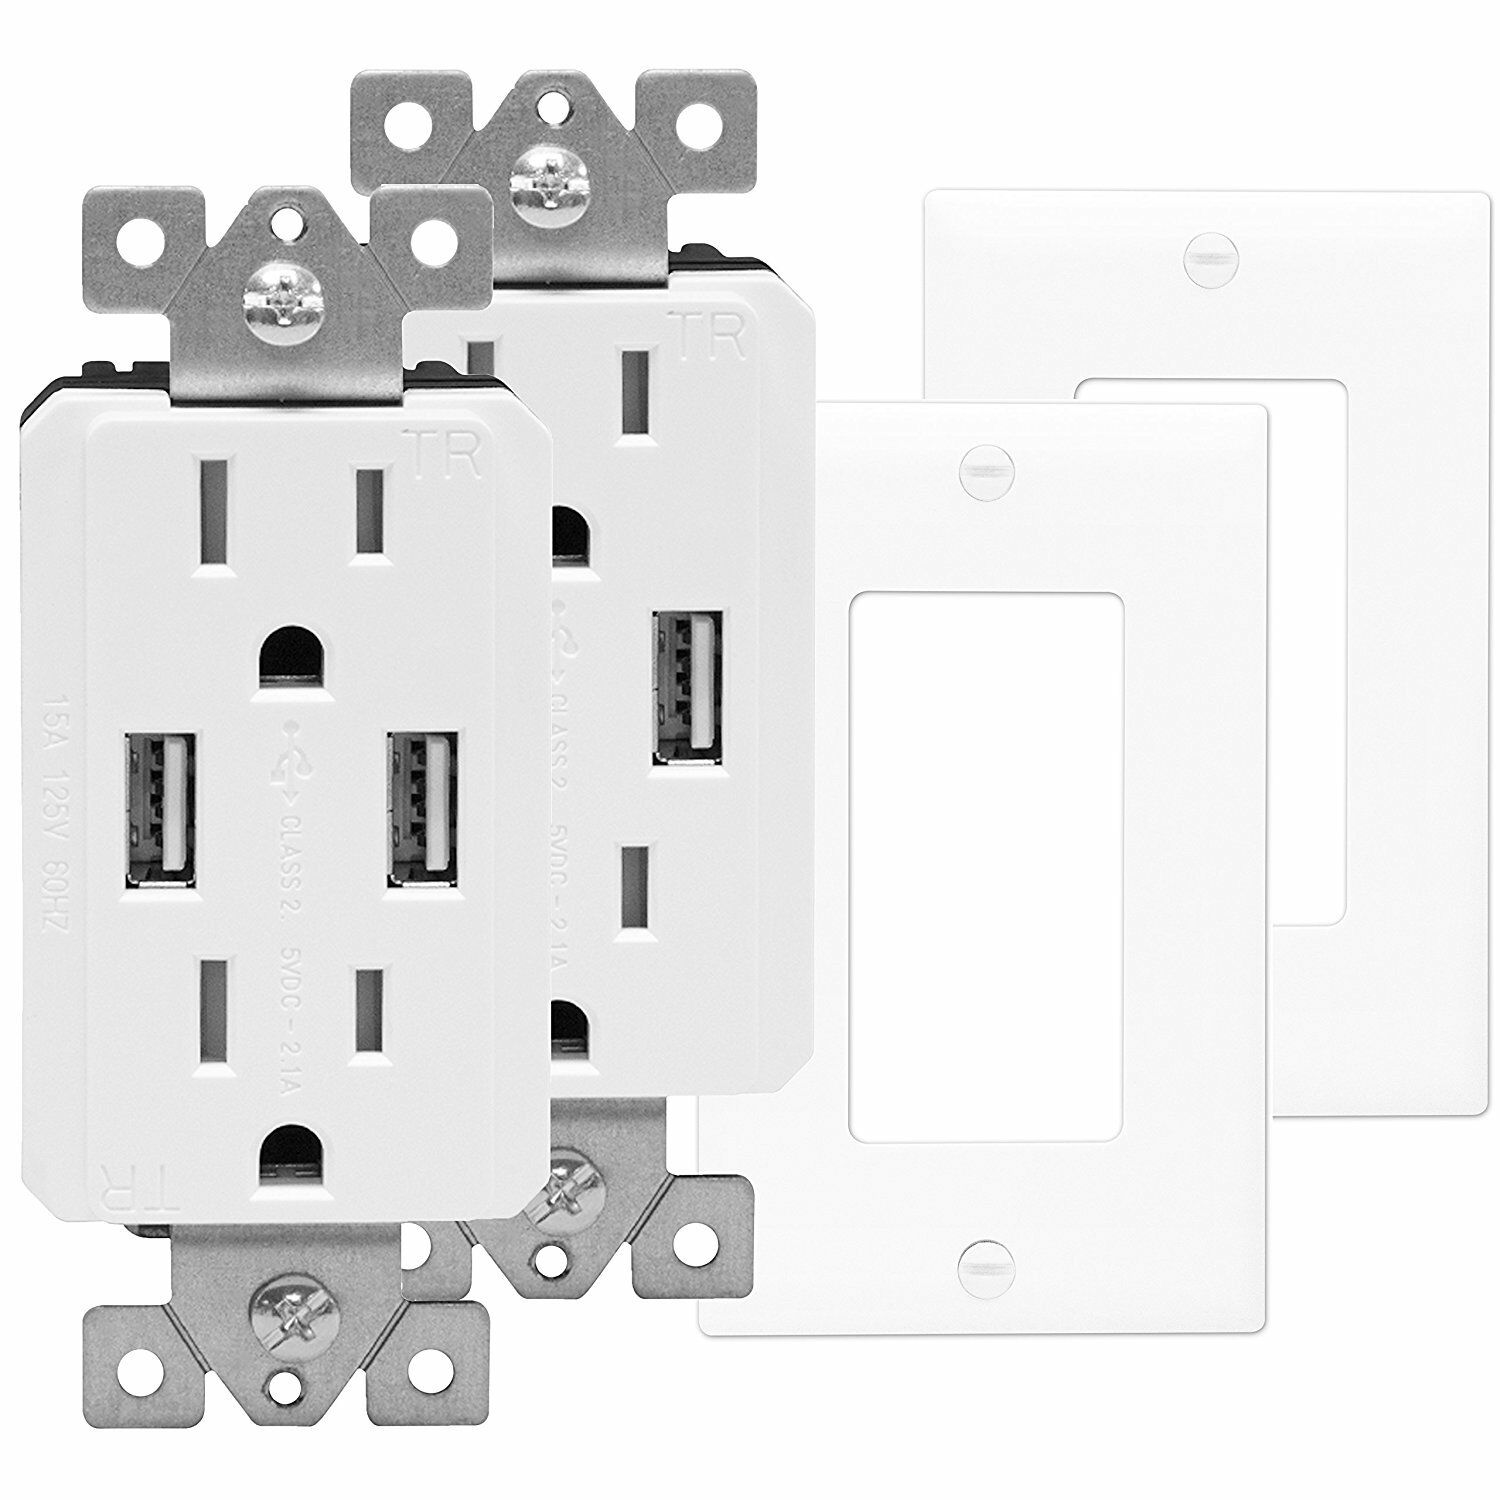 Blank Switch Plate Inspiration Brushed Stainless Steel Blank Outlet Cover Switch Wall Plates 1 2 Decorating Inspiration